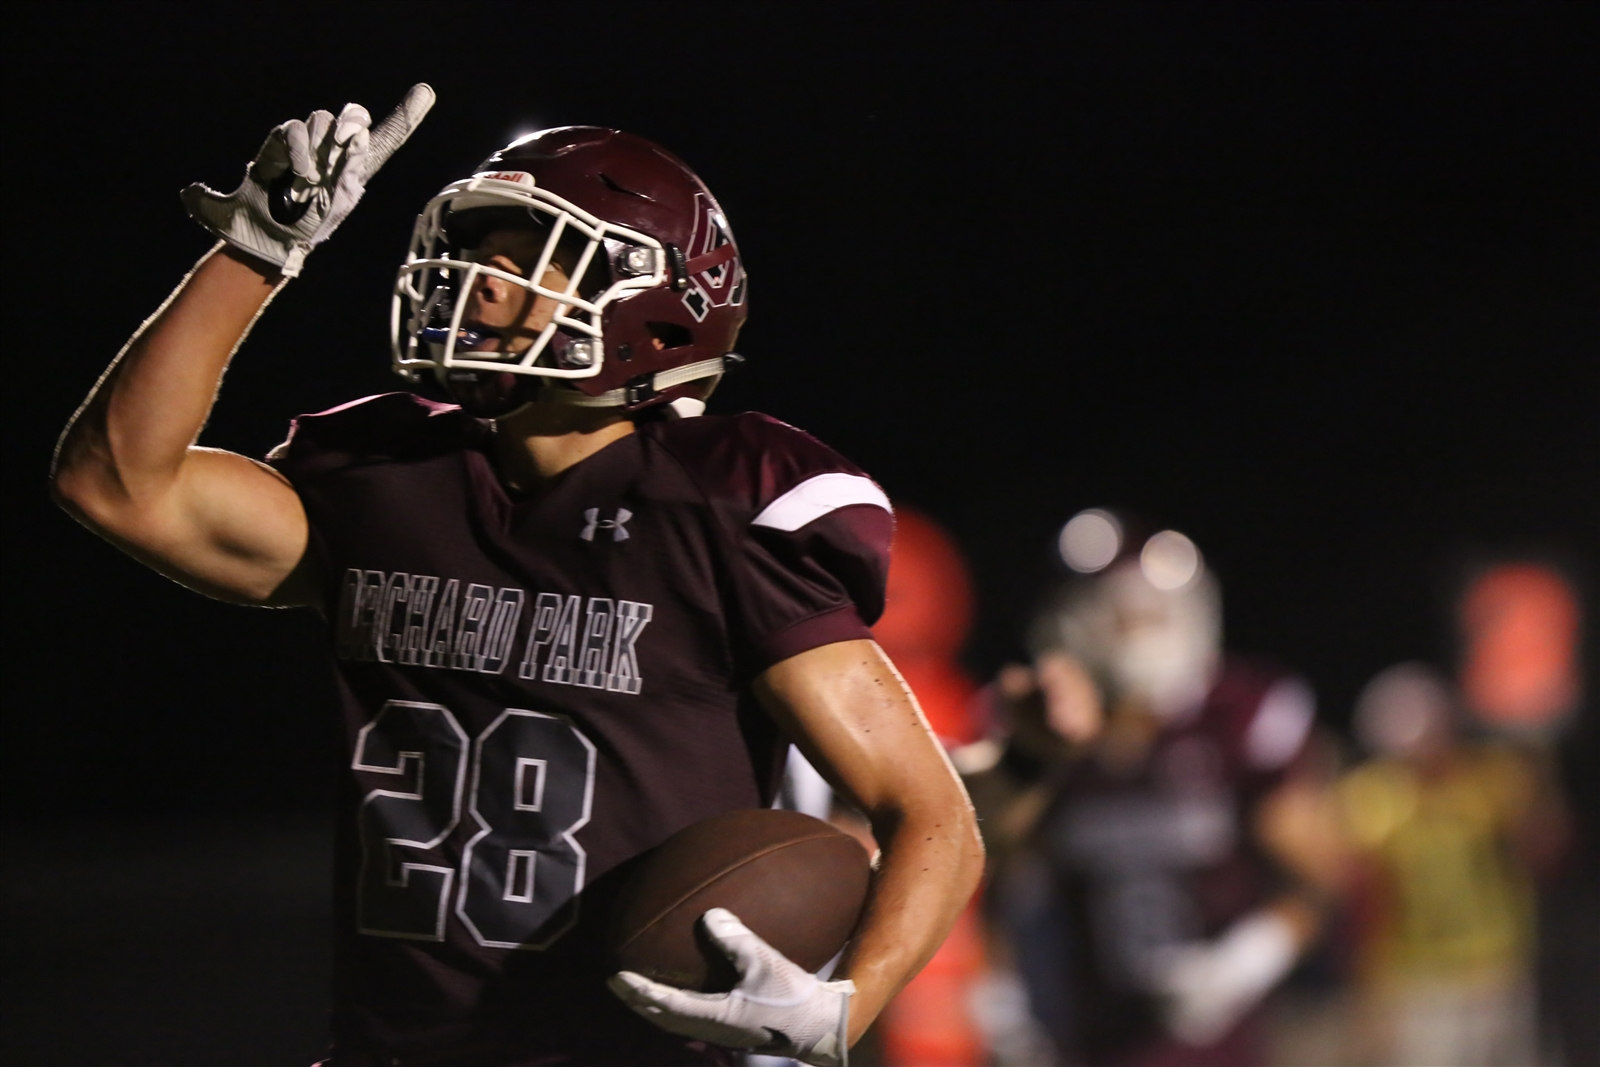 Orchard Park fell to Section V power Pittsford, 35-22, in Week 1 of the high school football season.